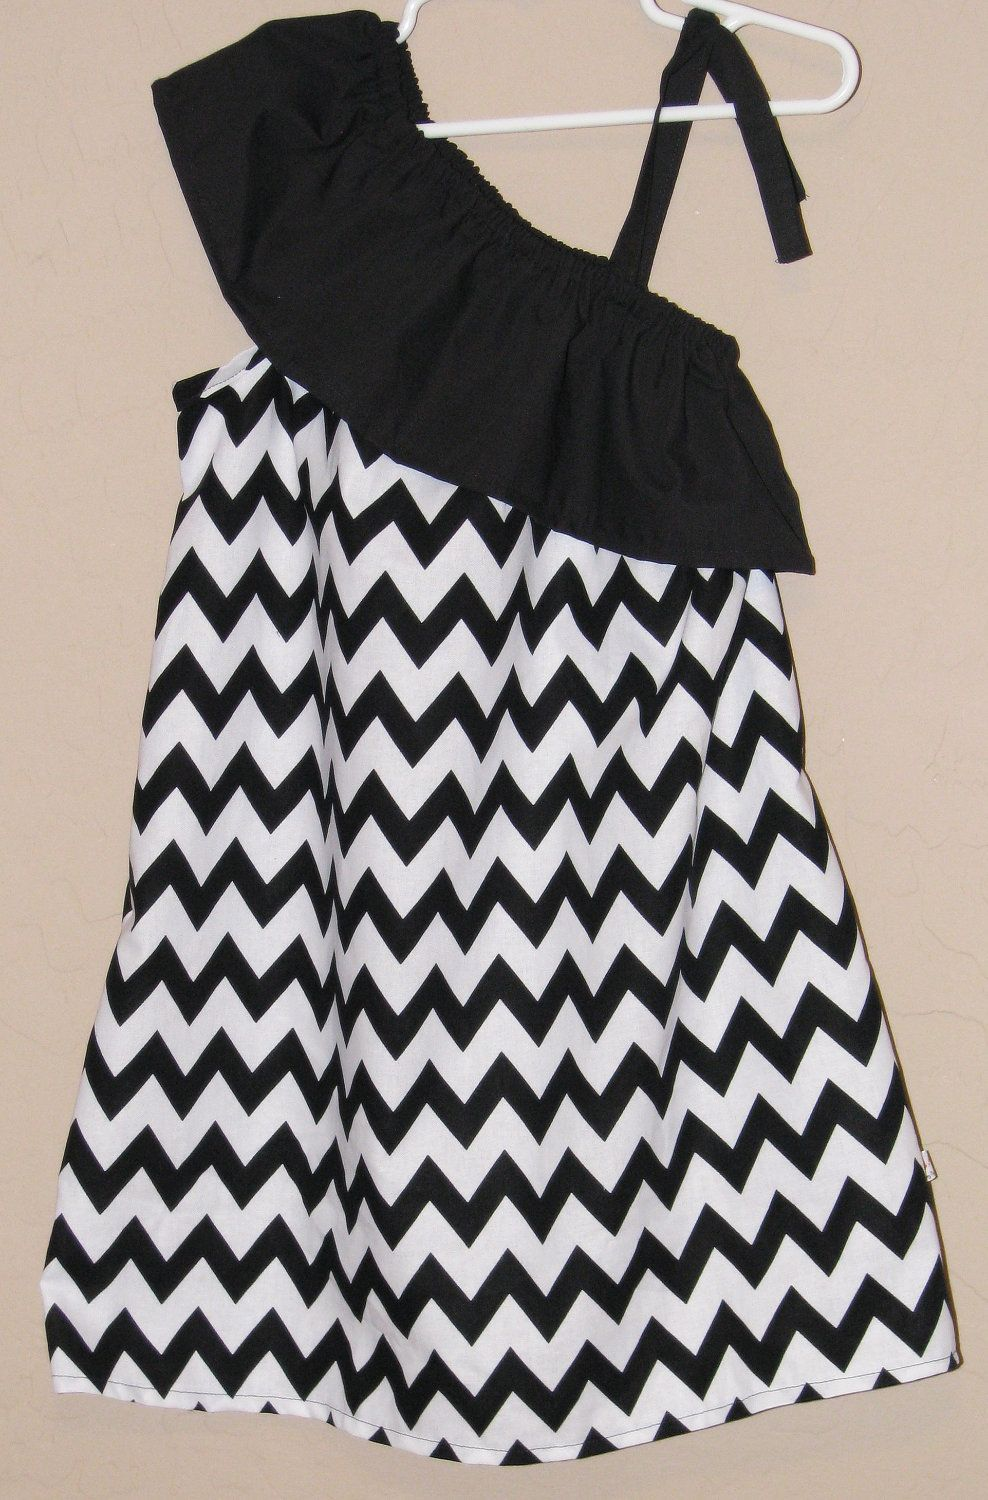 c957f9b0c Ruffled One Shoulder Chevron Dress - Baby Toddler Girl Designer ...